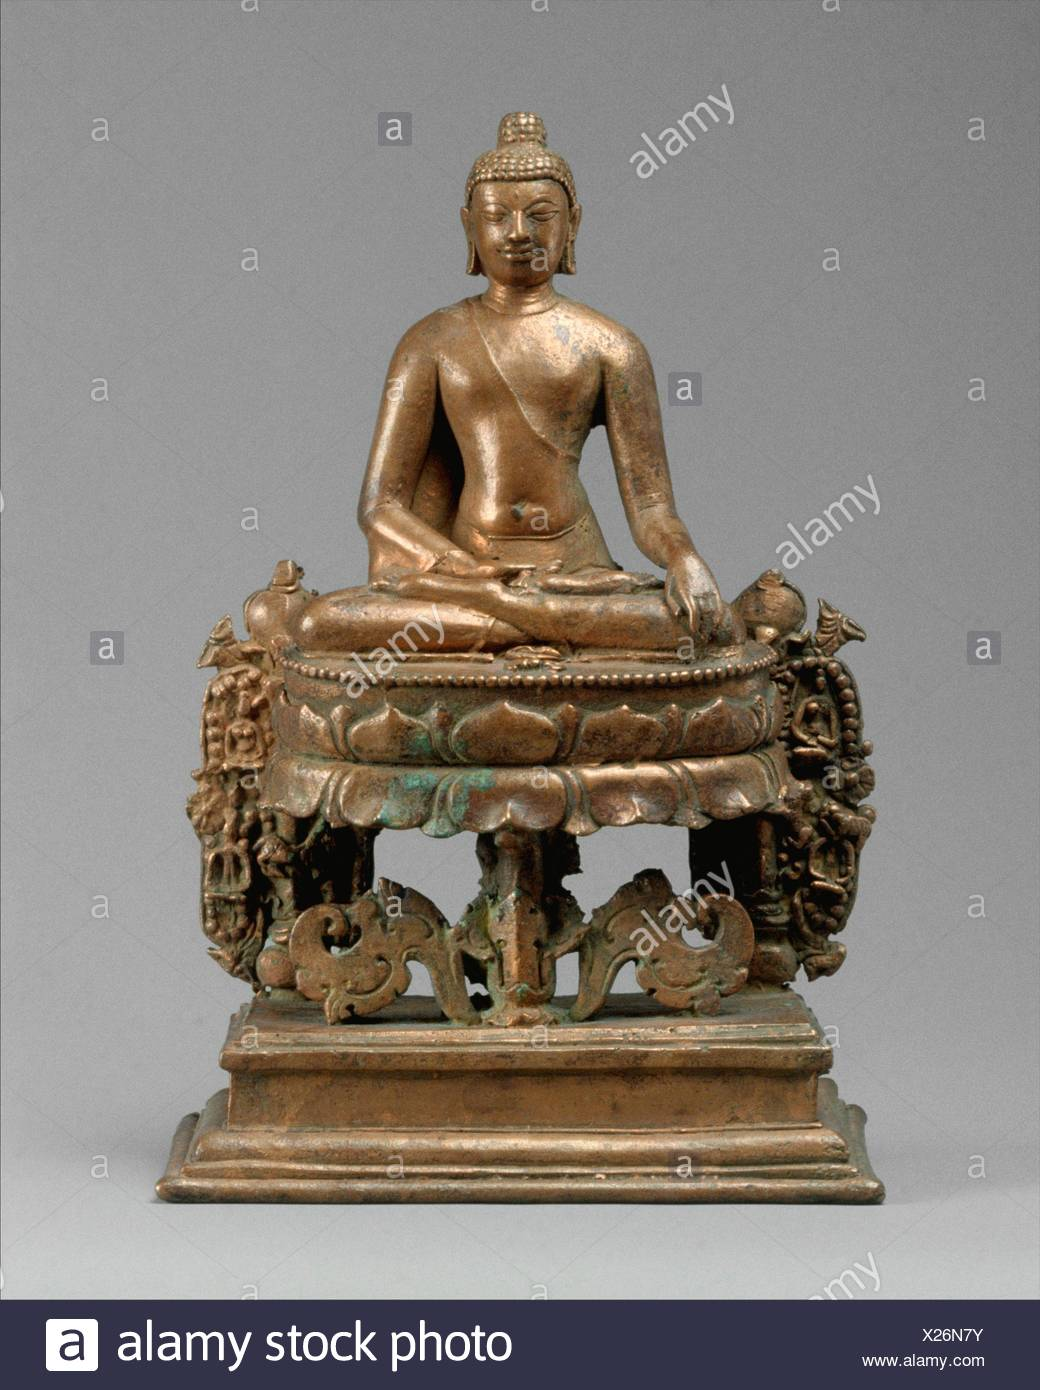 Lotus-Enthroned Buddha Akshobhya, the Transcendent Buddha. Period: Pala period; Date: 8th-early 9th century; Culture: Bangladesh (Comilla District); - Stock Image